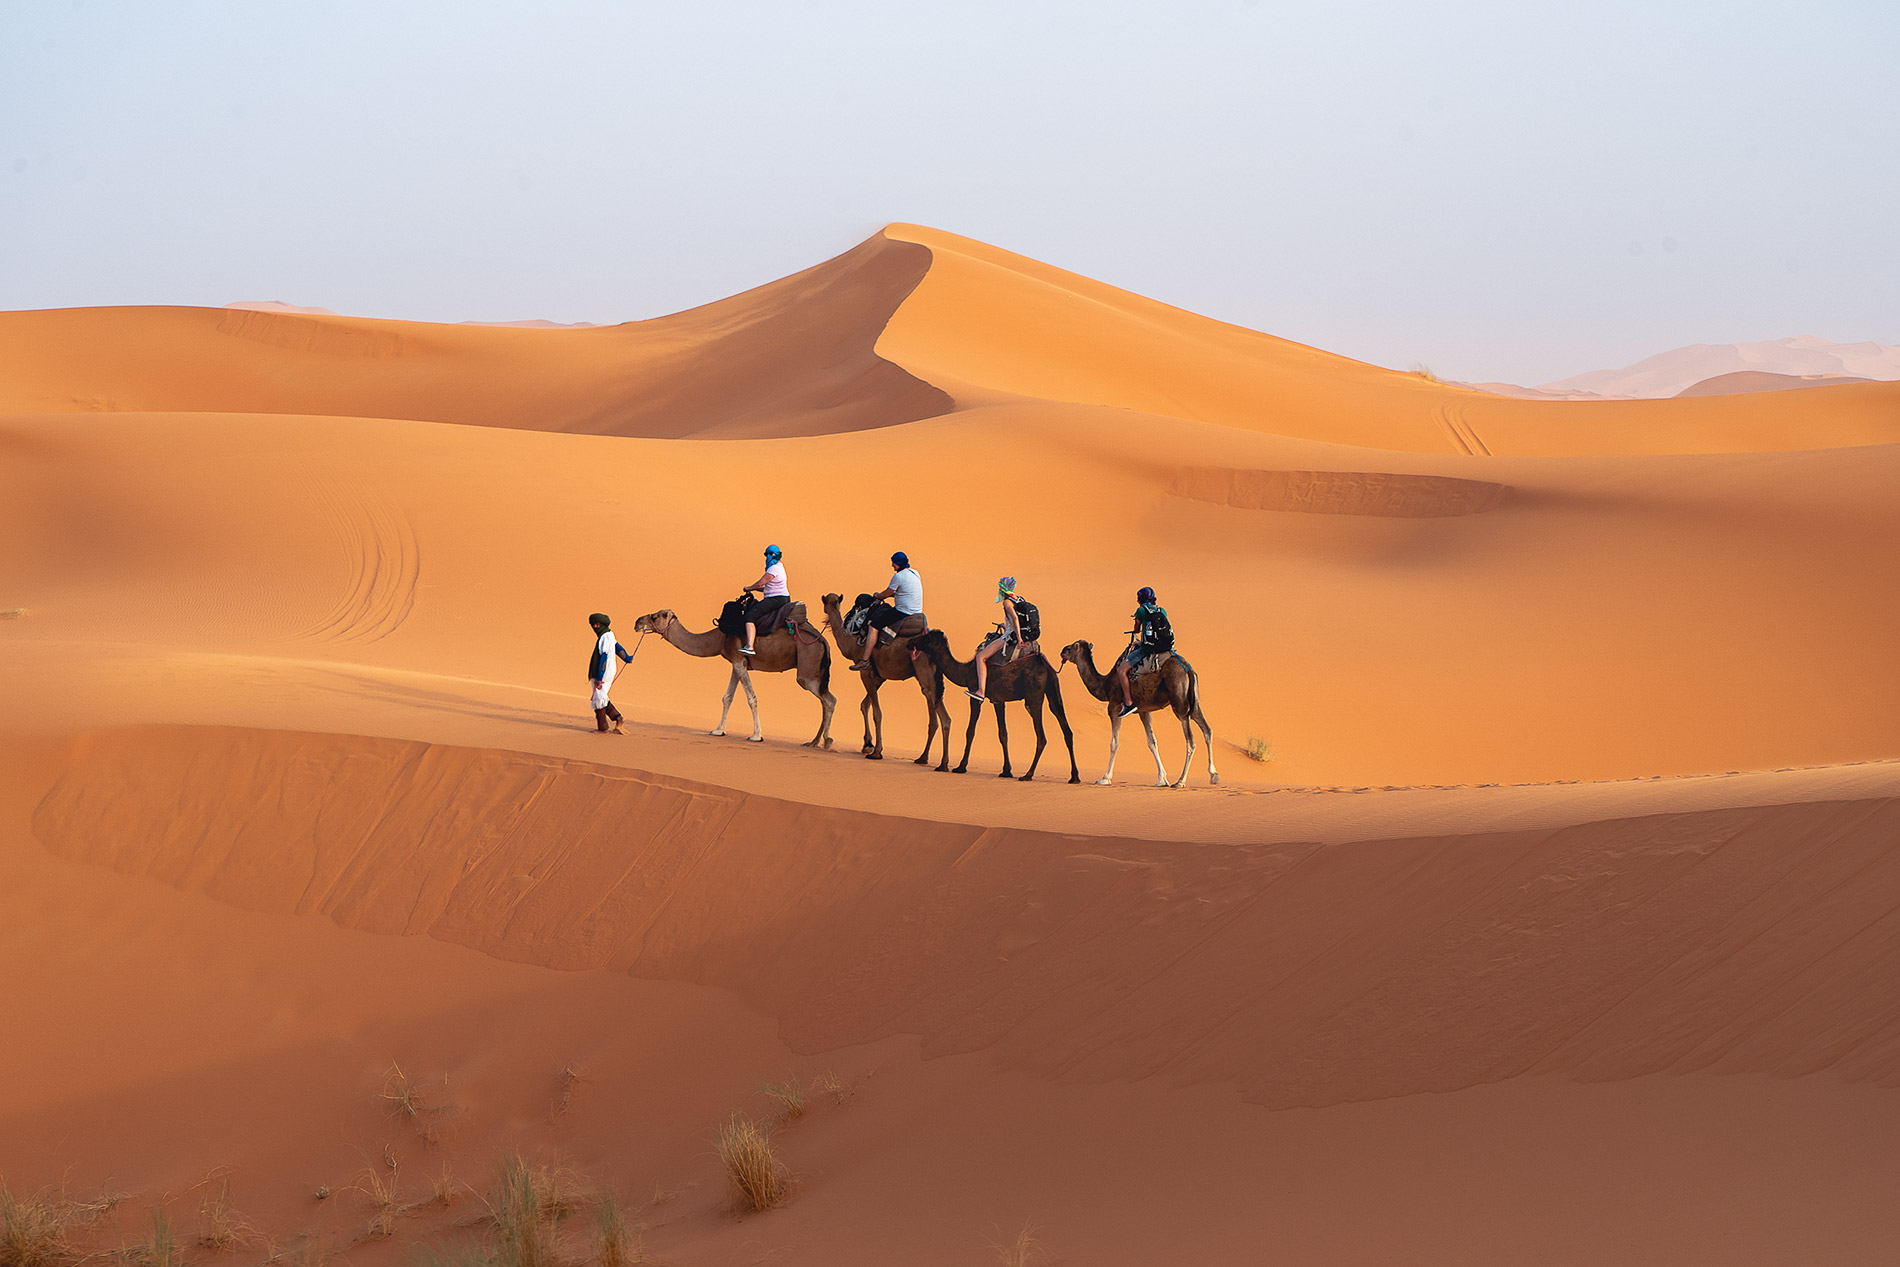 Camel riding in the Erg Chebbi Dunes in Morocco